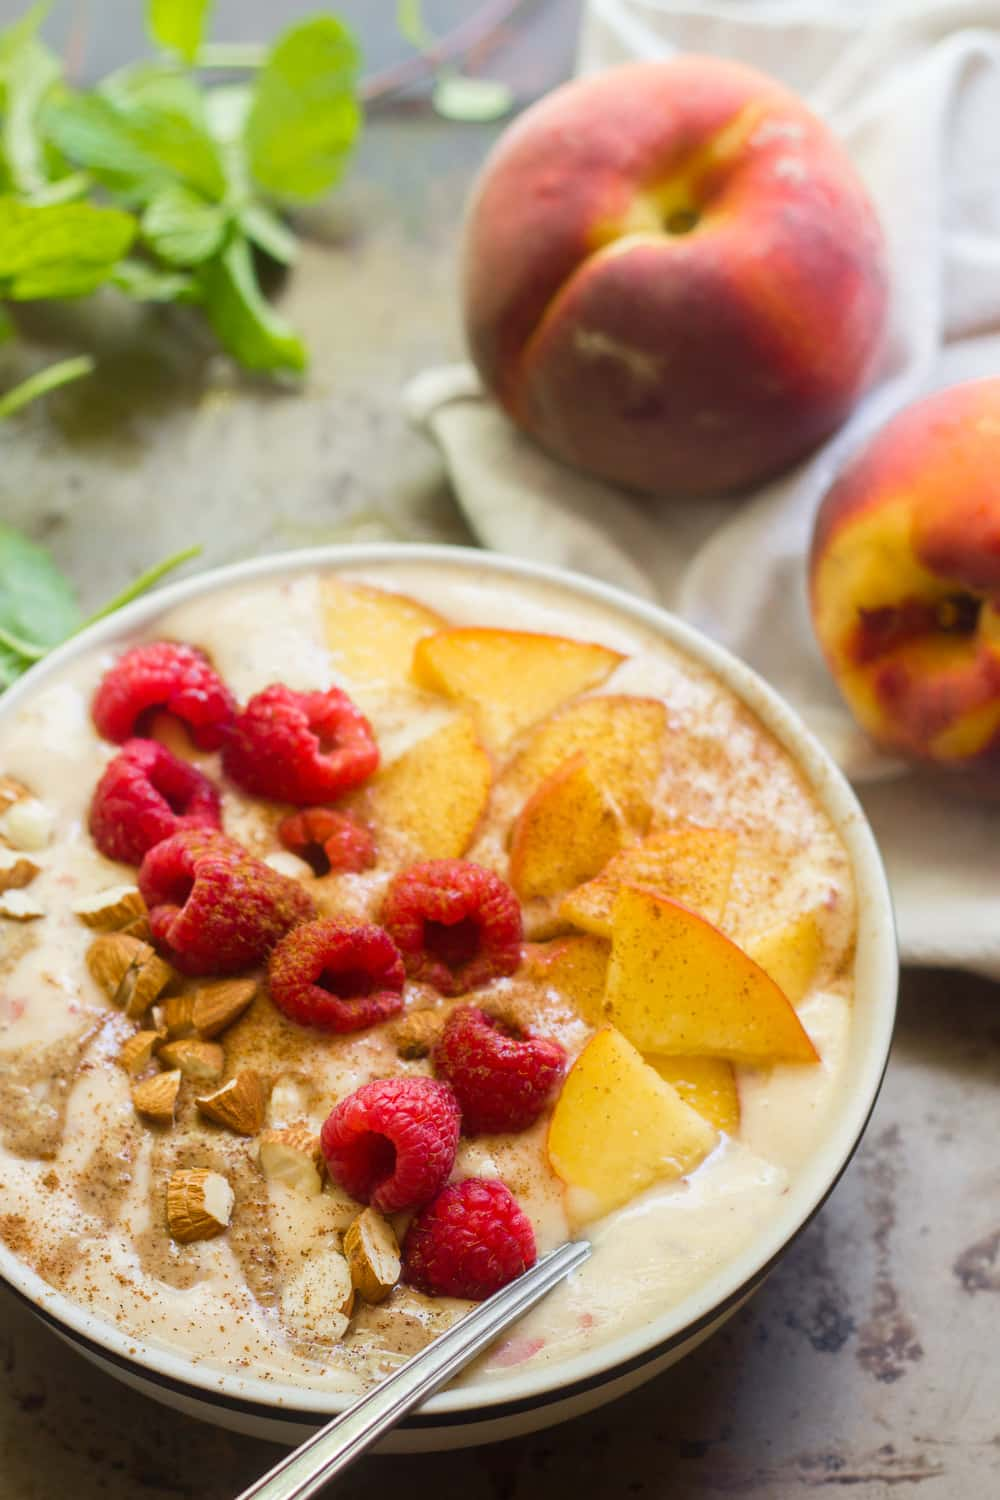 Peaches & Cream Smoothie Bowls